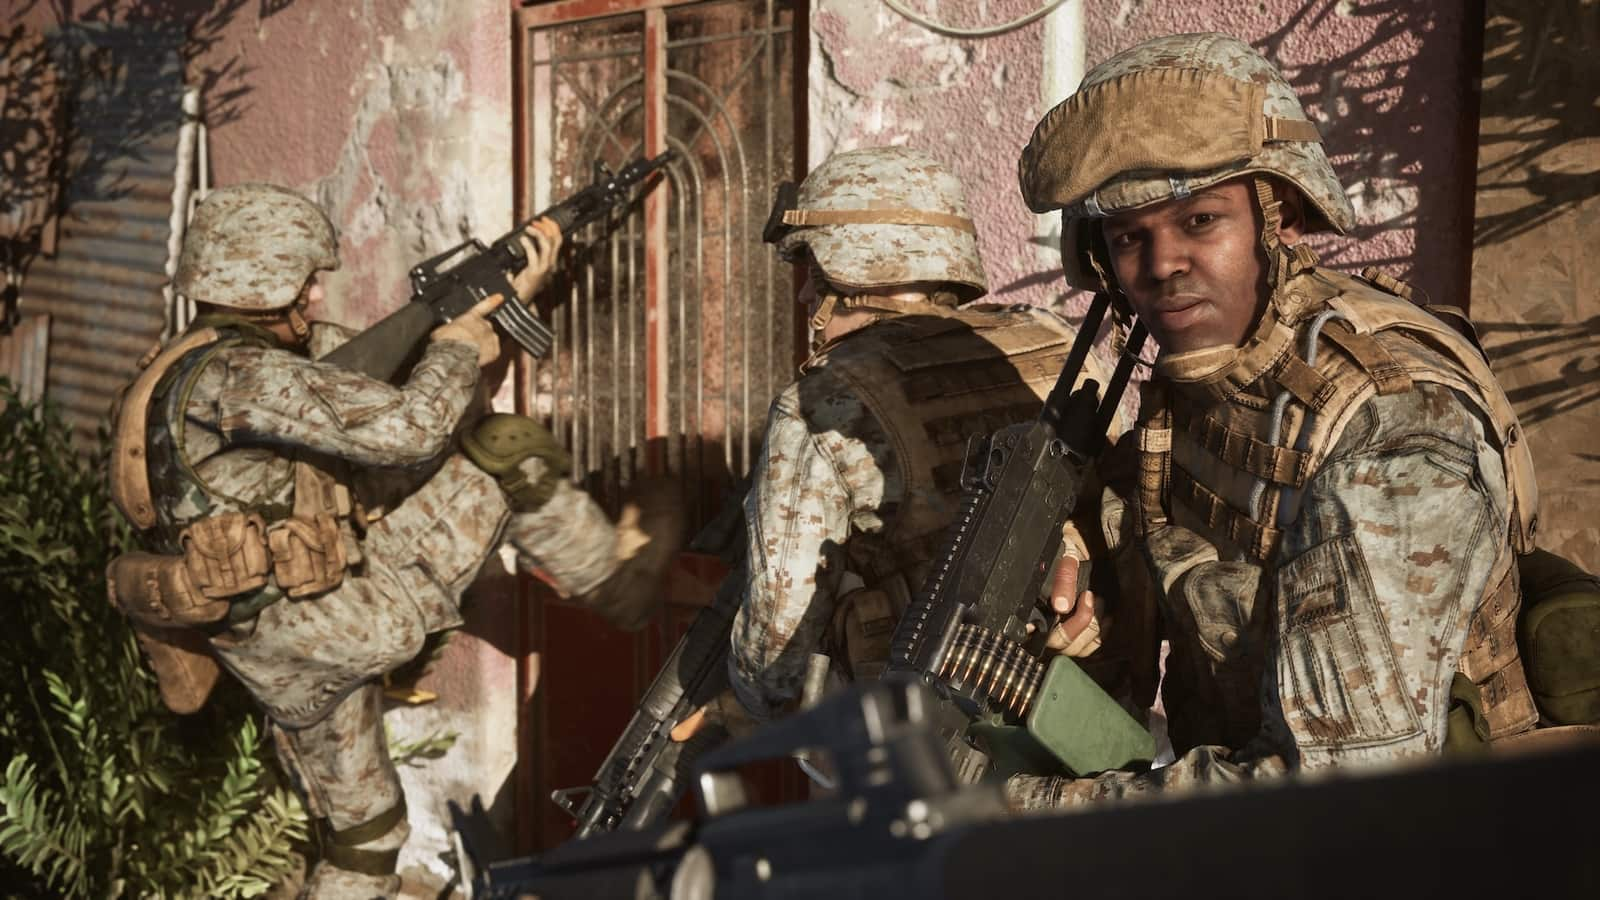 'Six Days in Fallujah' Is Back, but Why and For Who?